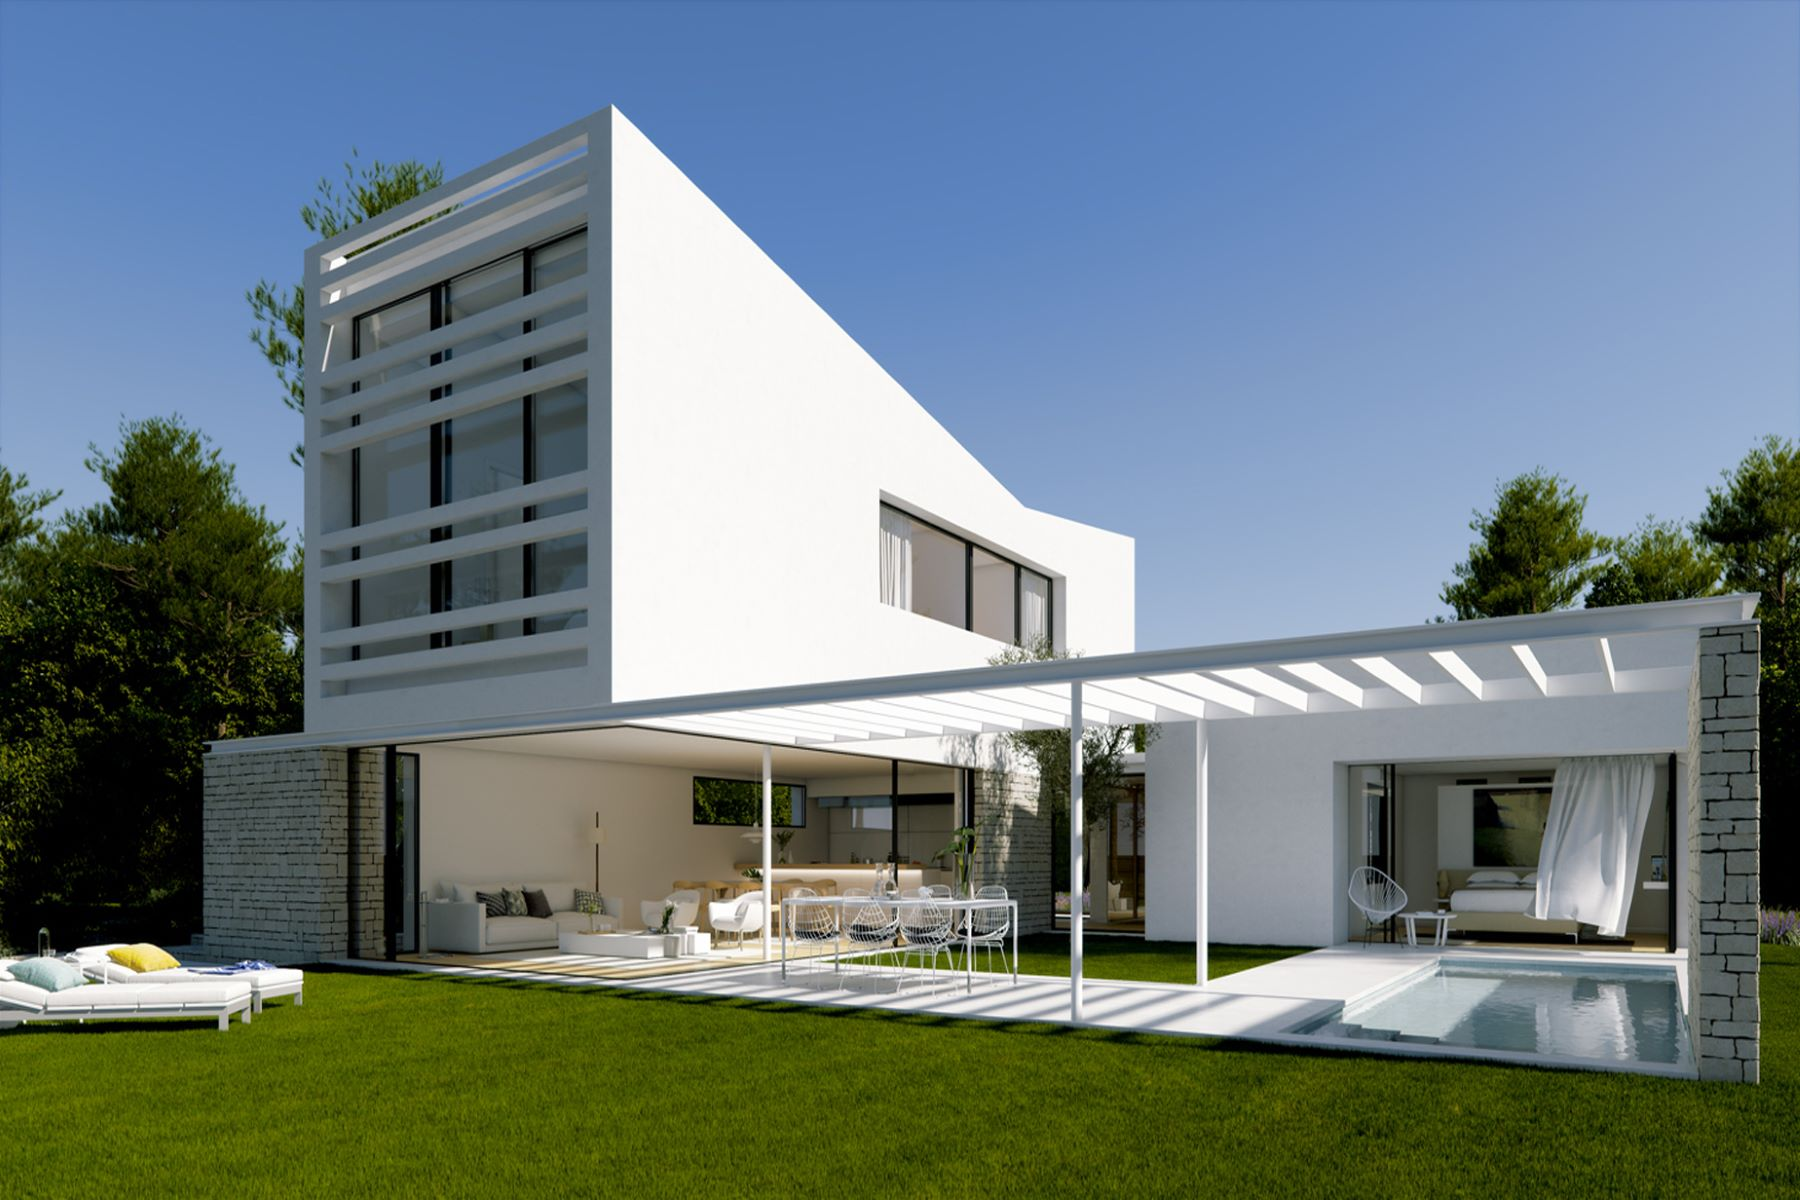 Single Family Home for Sale at Modern villa in golf club Other Spain, Other Areas In Spain, 17001 Spain